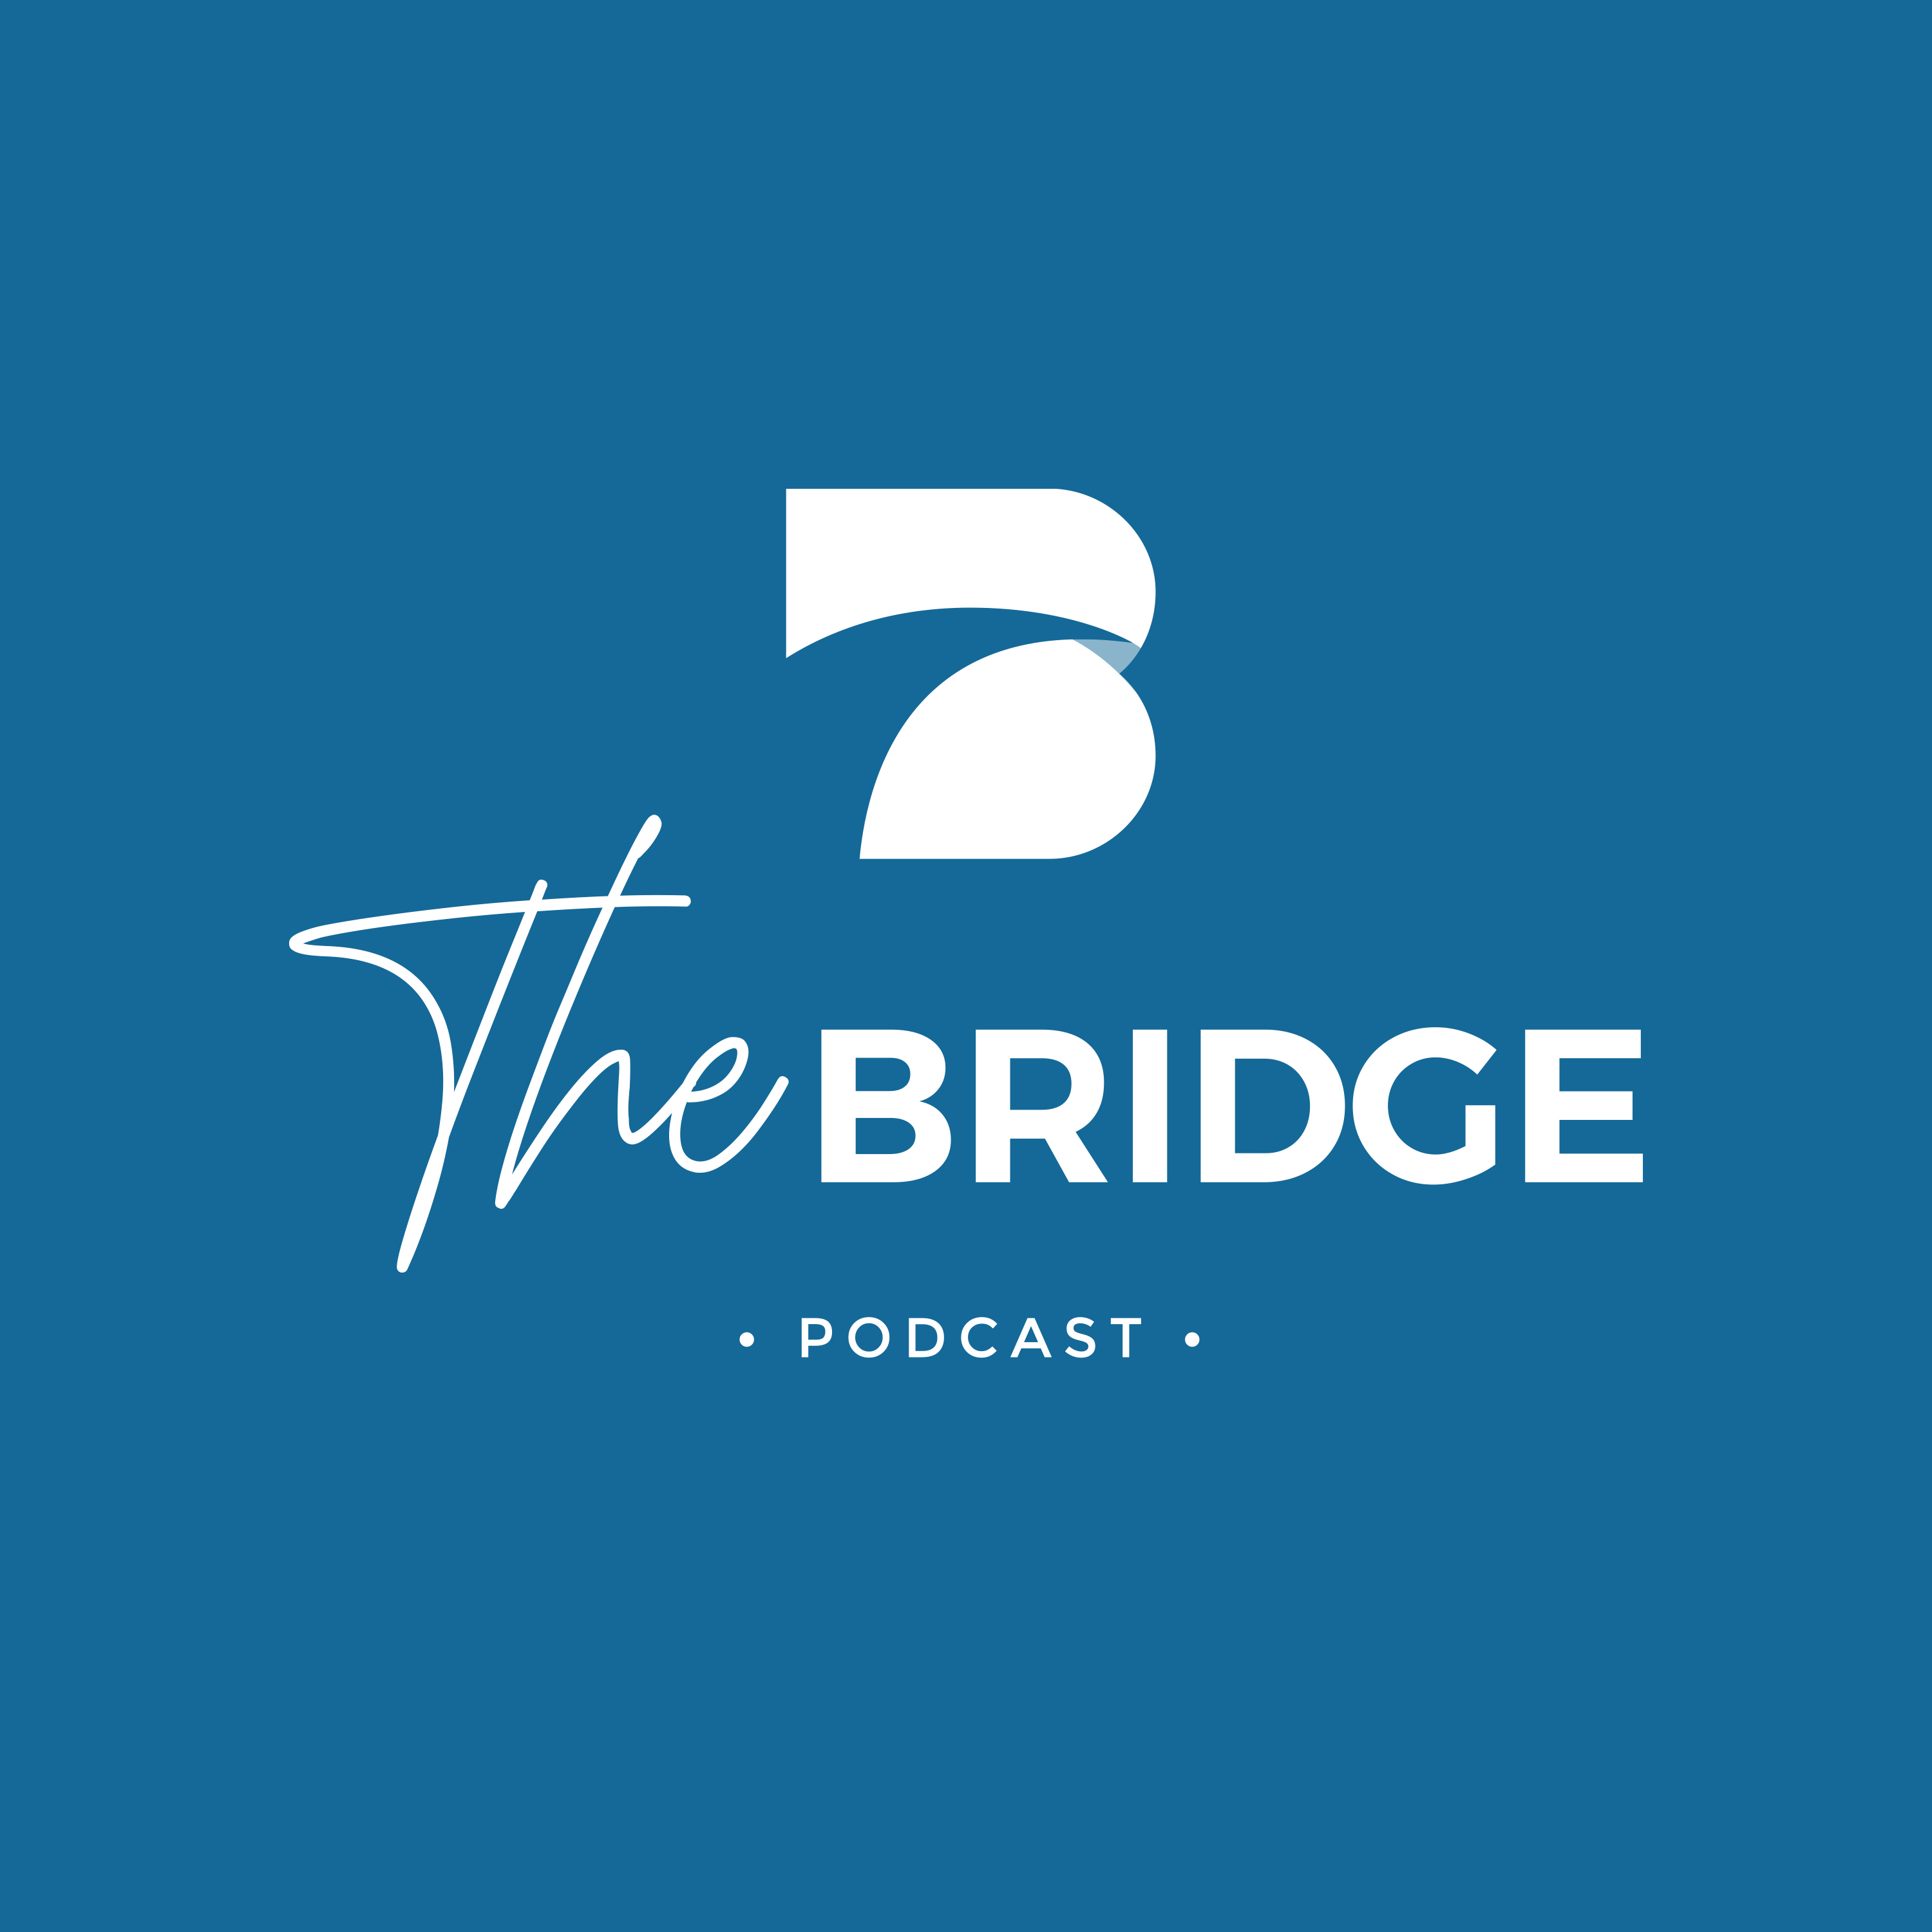 the-bridge-podcast